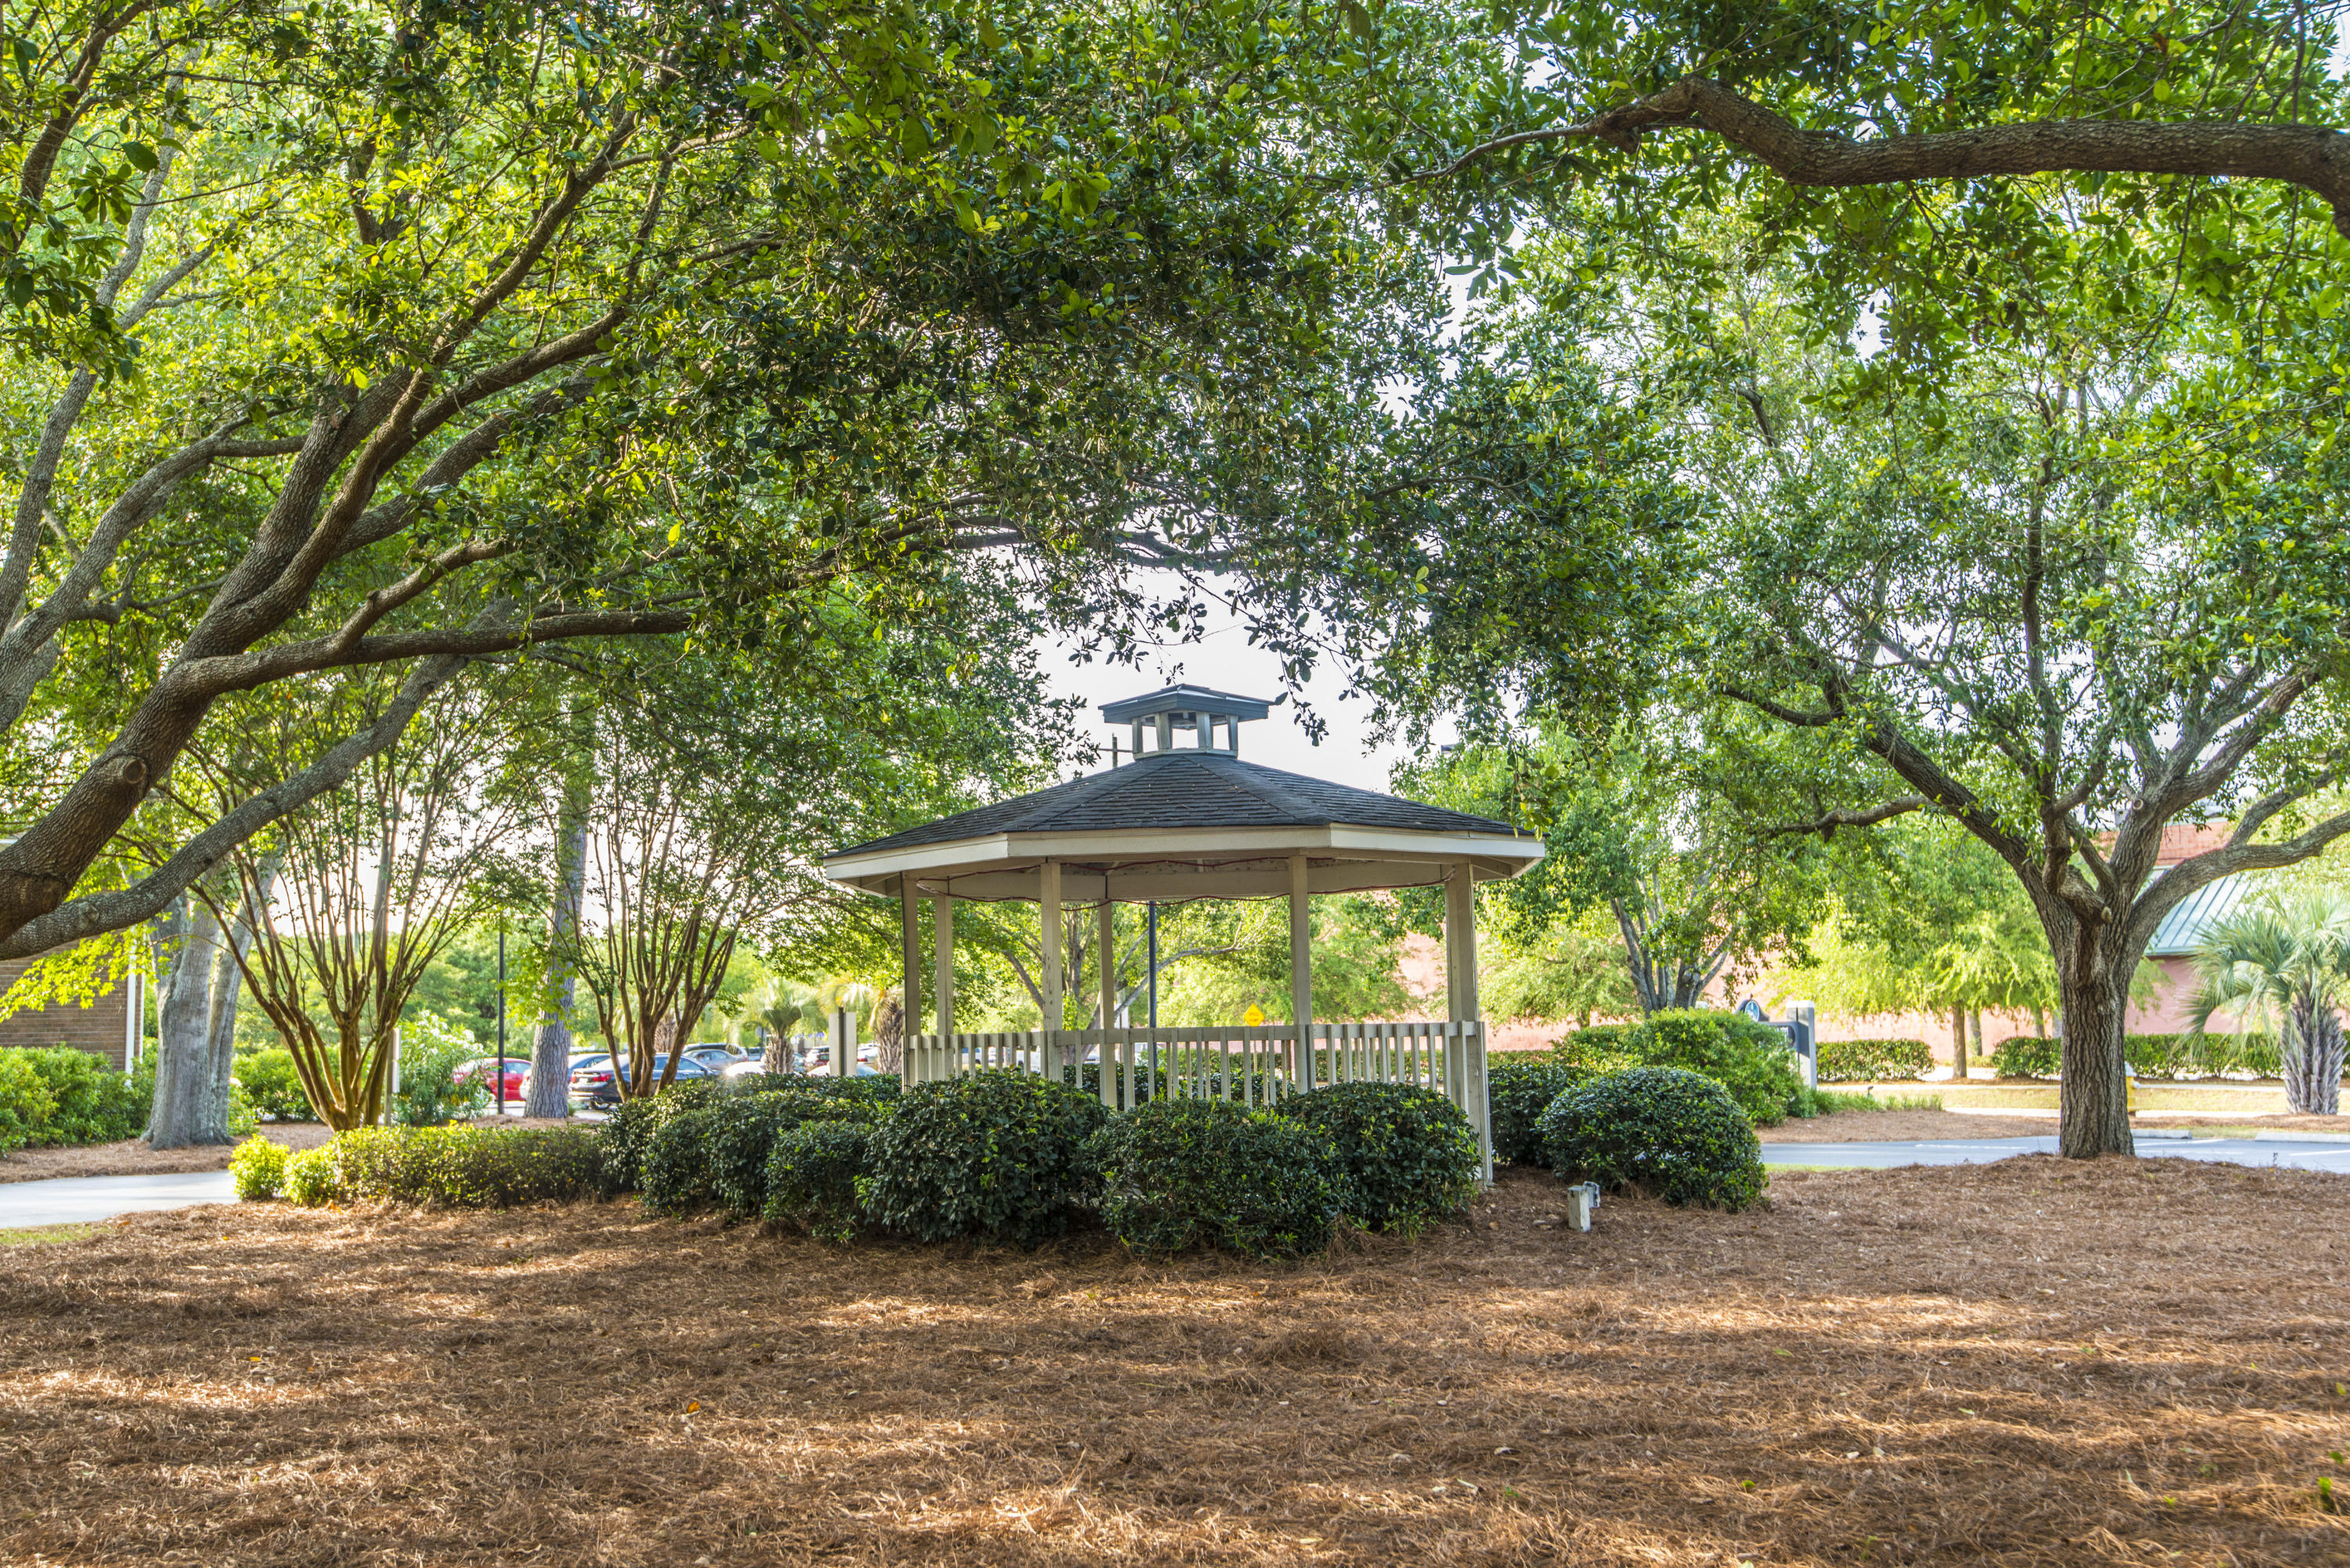 Rivers Point Row Homes For Sale - 21 Rivers Point Row, Charleston, SC - 12